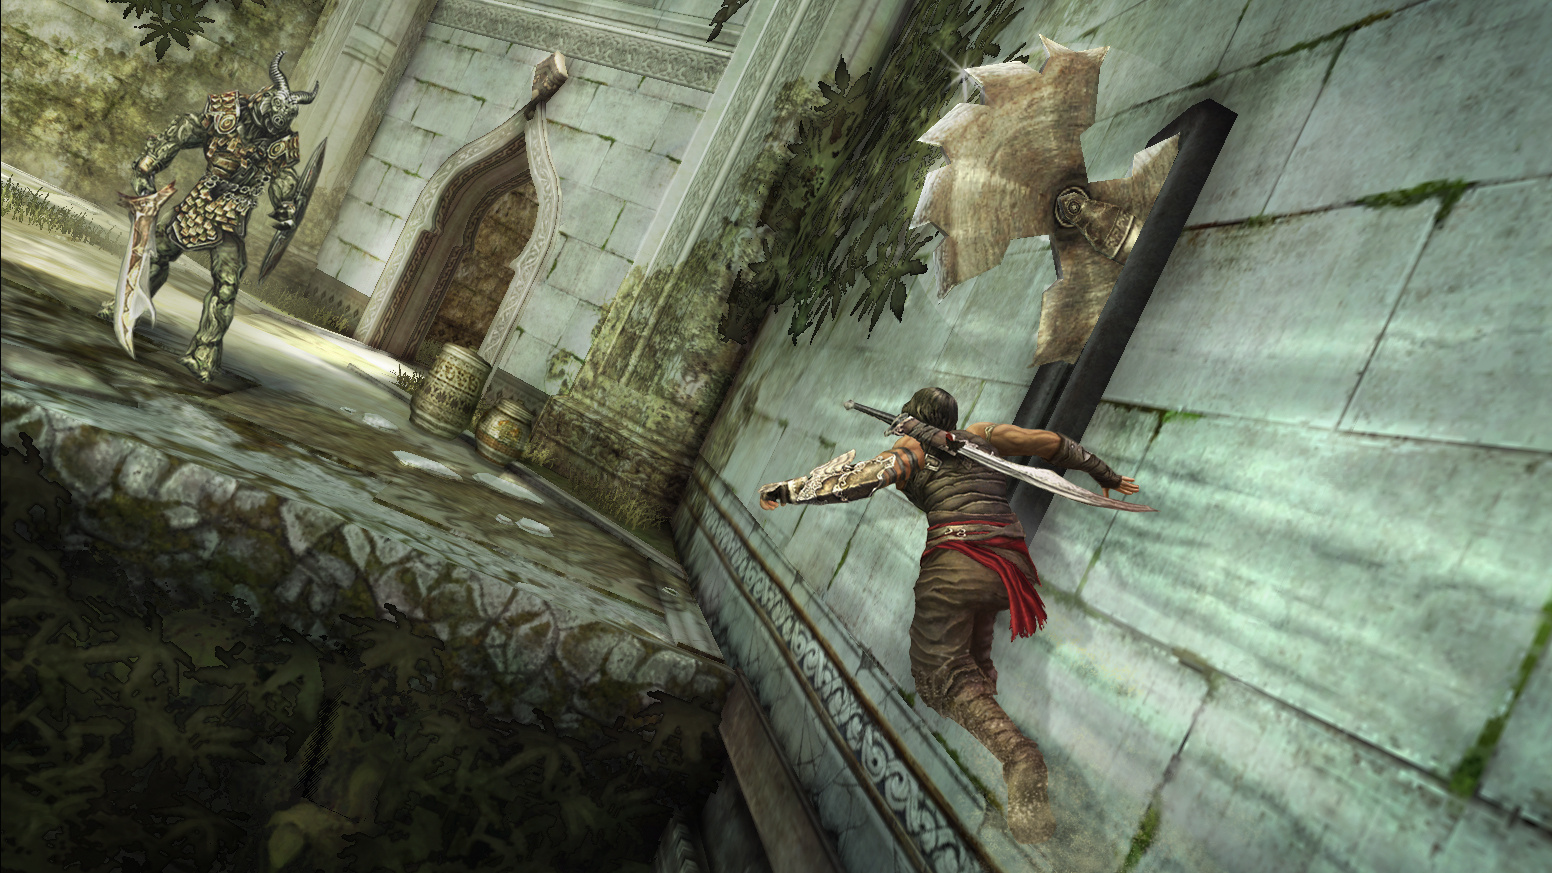 prince of persia 2008 game free download for pc full version